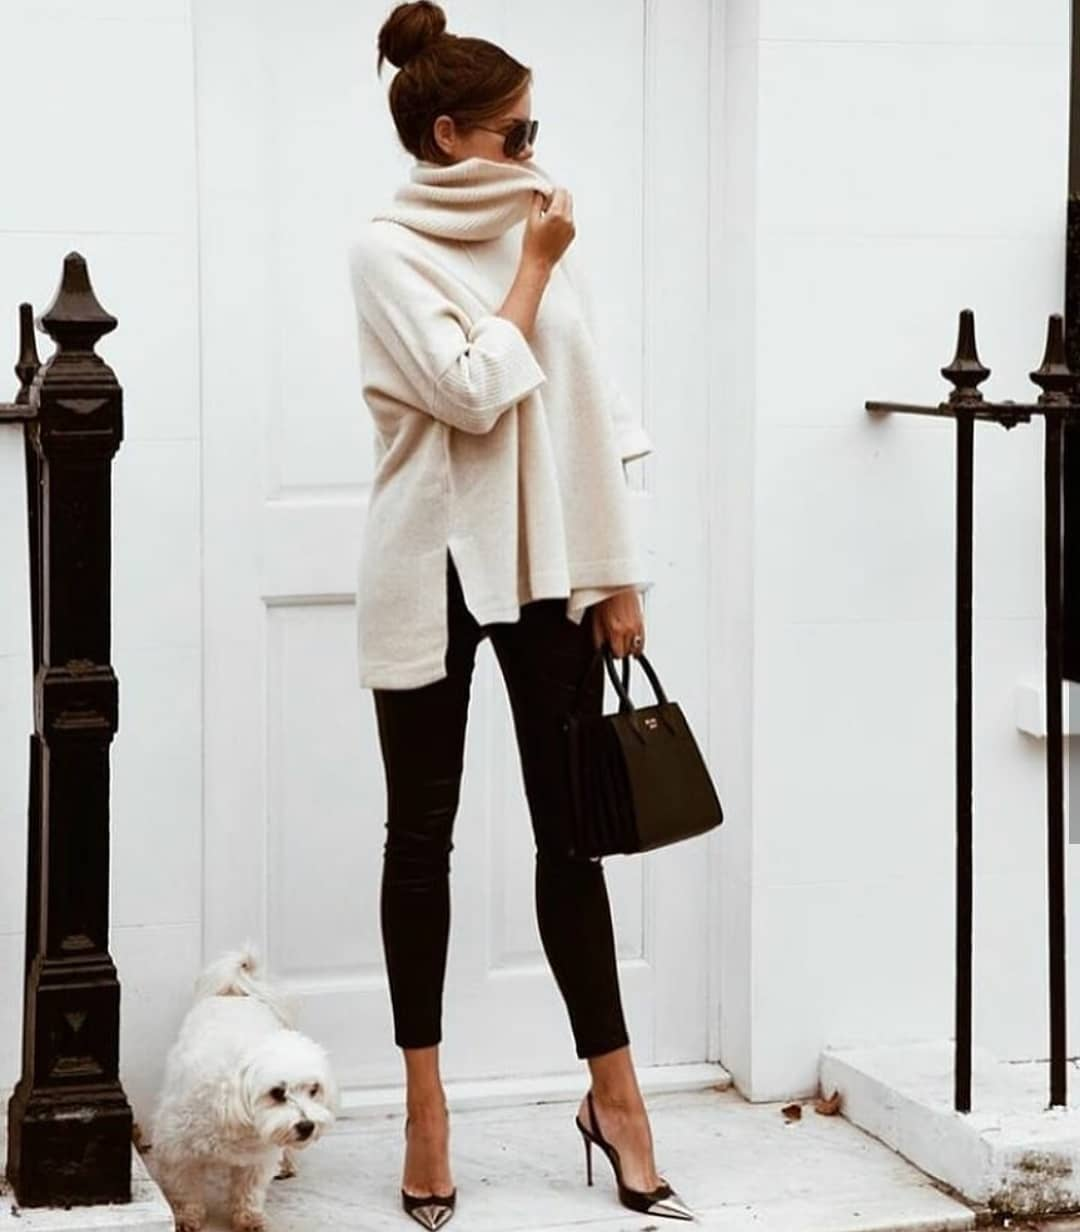 Relaxed Fit White High Neck Sweater And Black Skinny Pants For Fall 2019